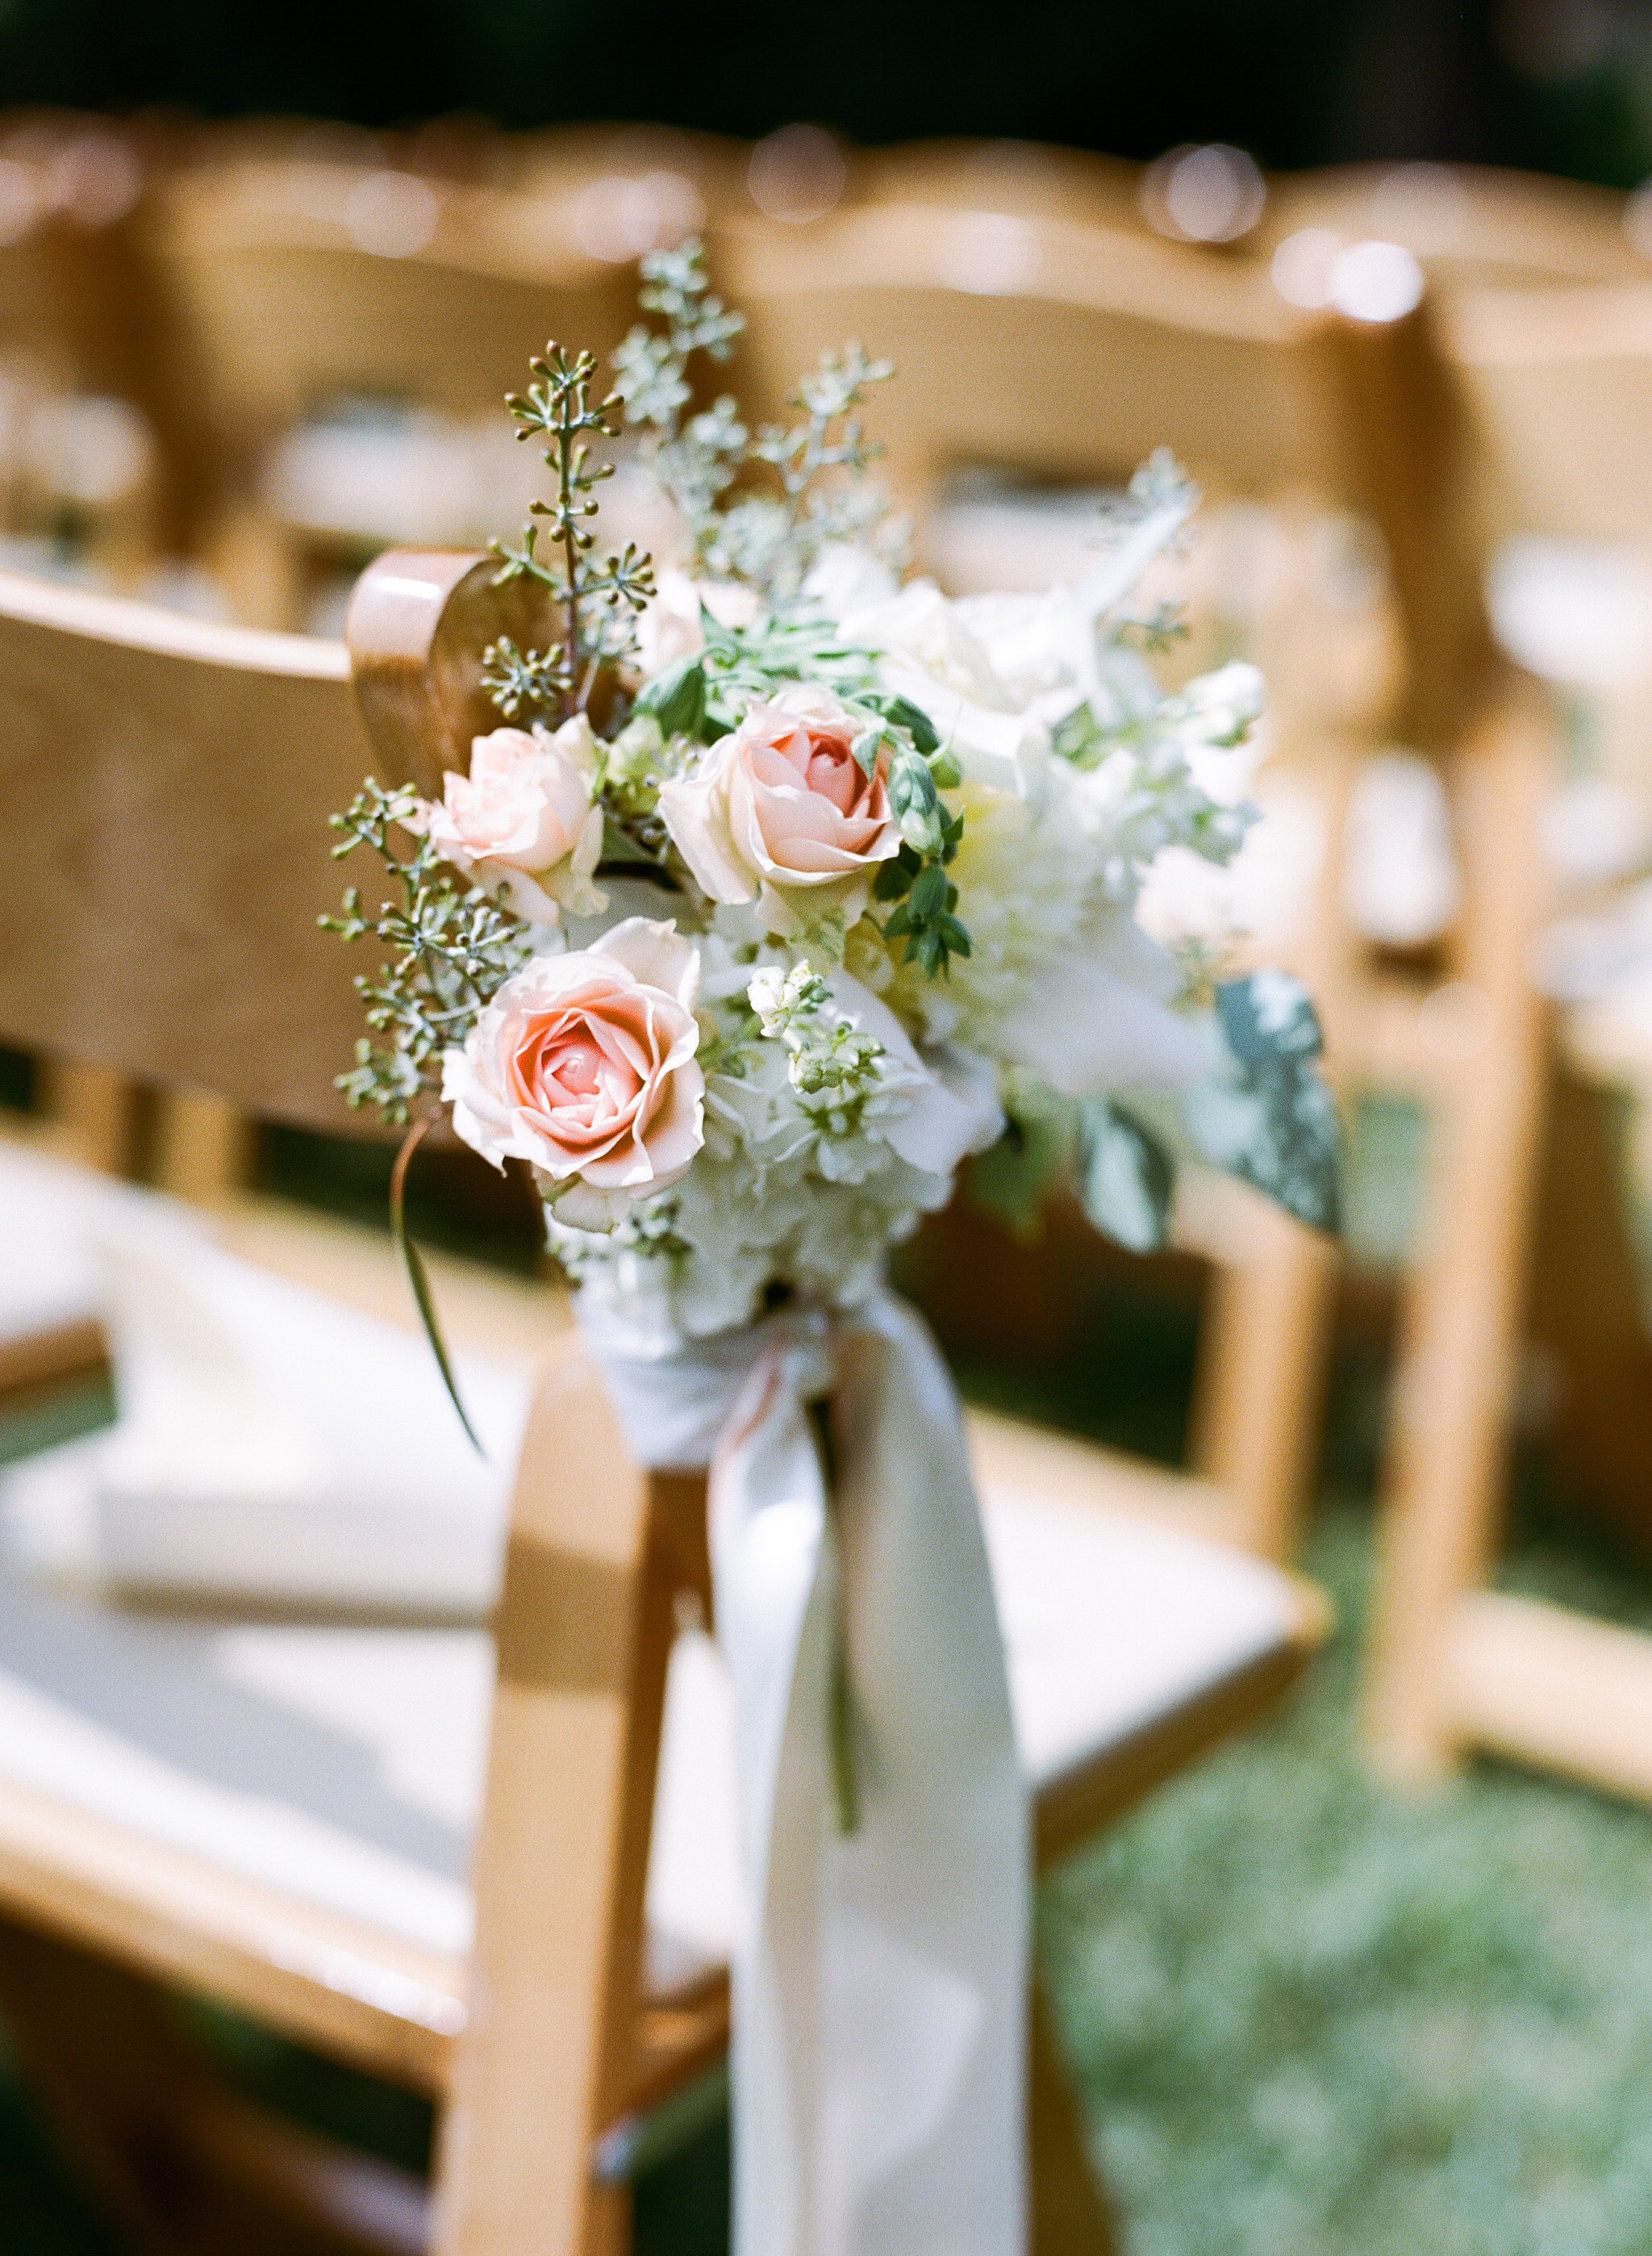 L'Relyea Events - Event Planning & Design- Calistoga Ranch, CA  Wedding venues in Wine Country